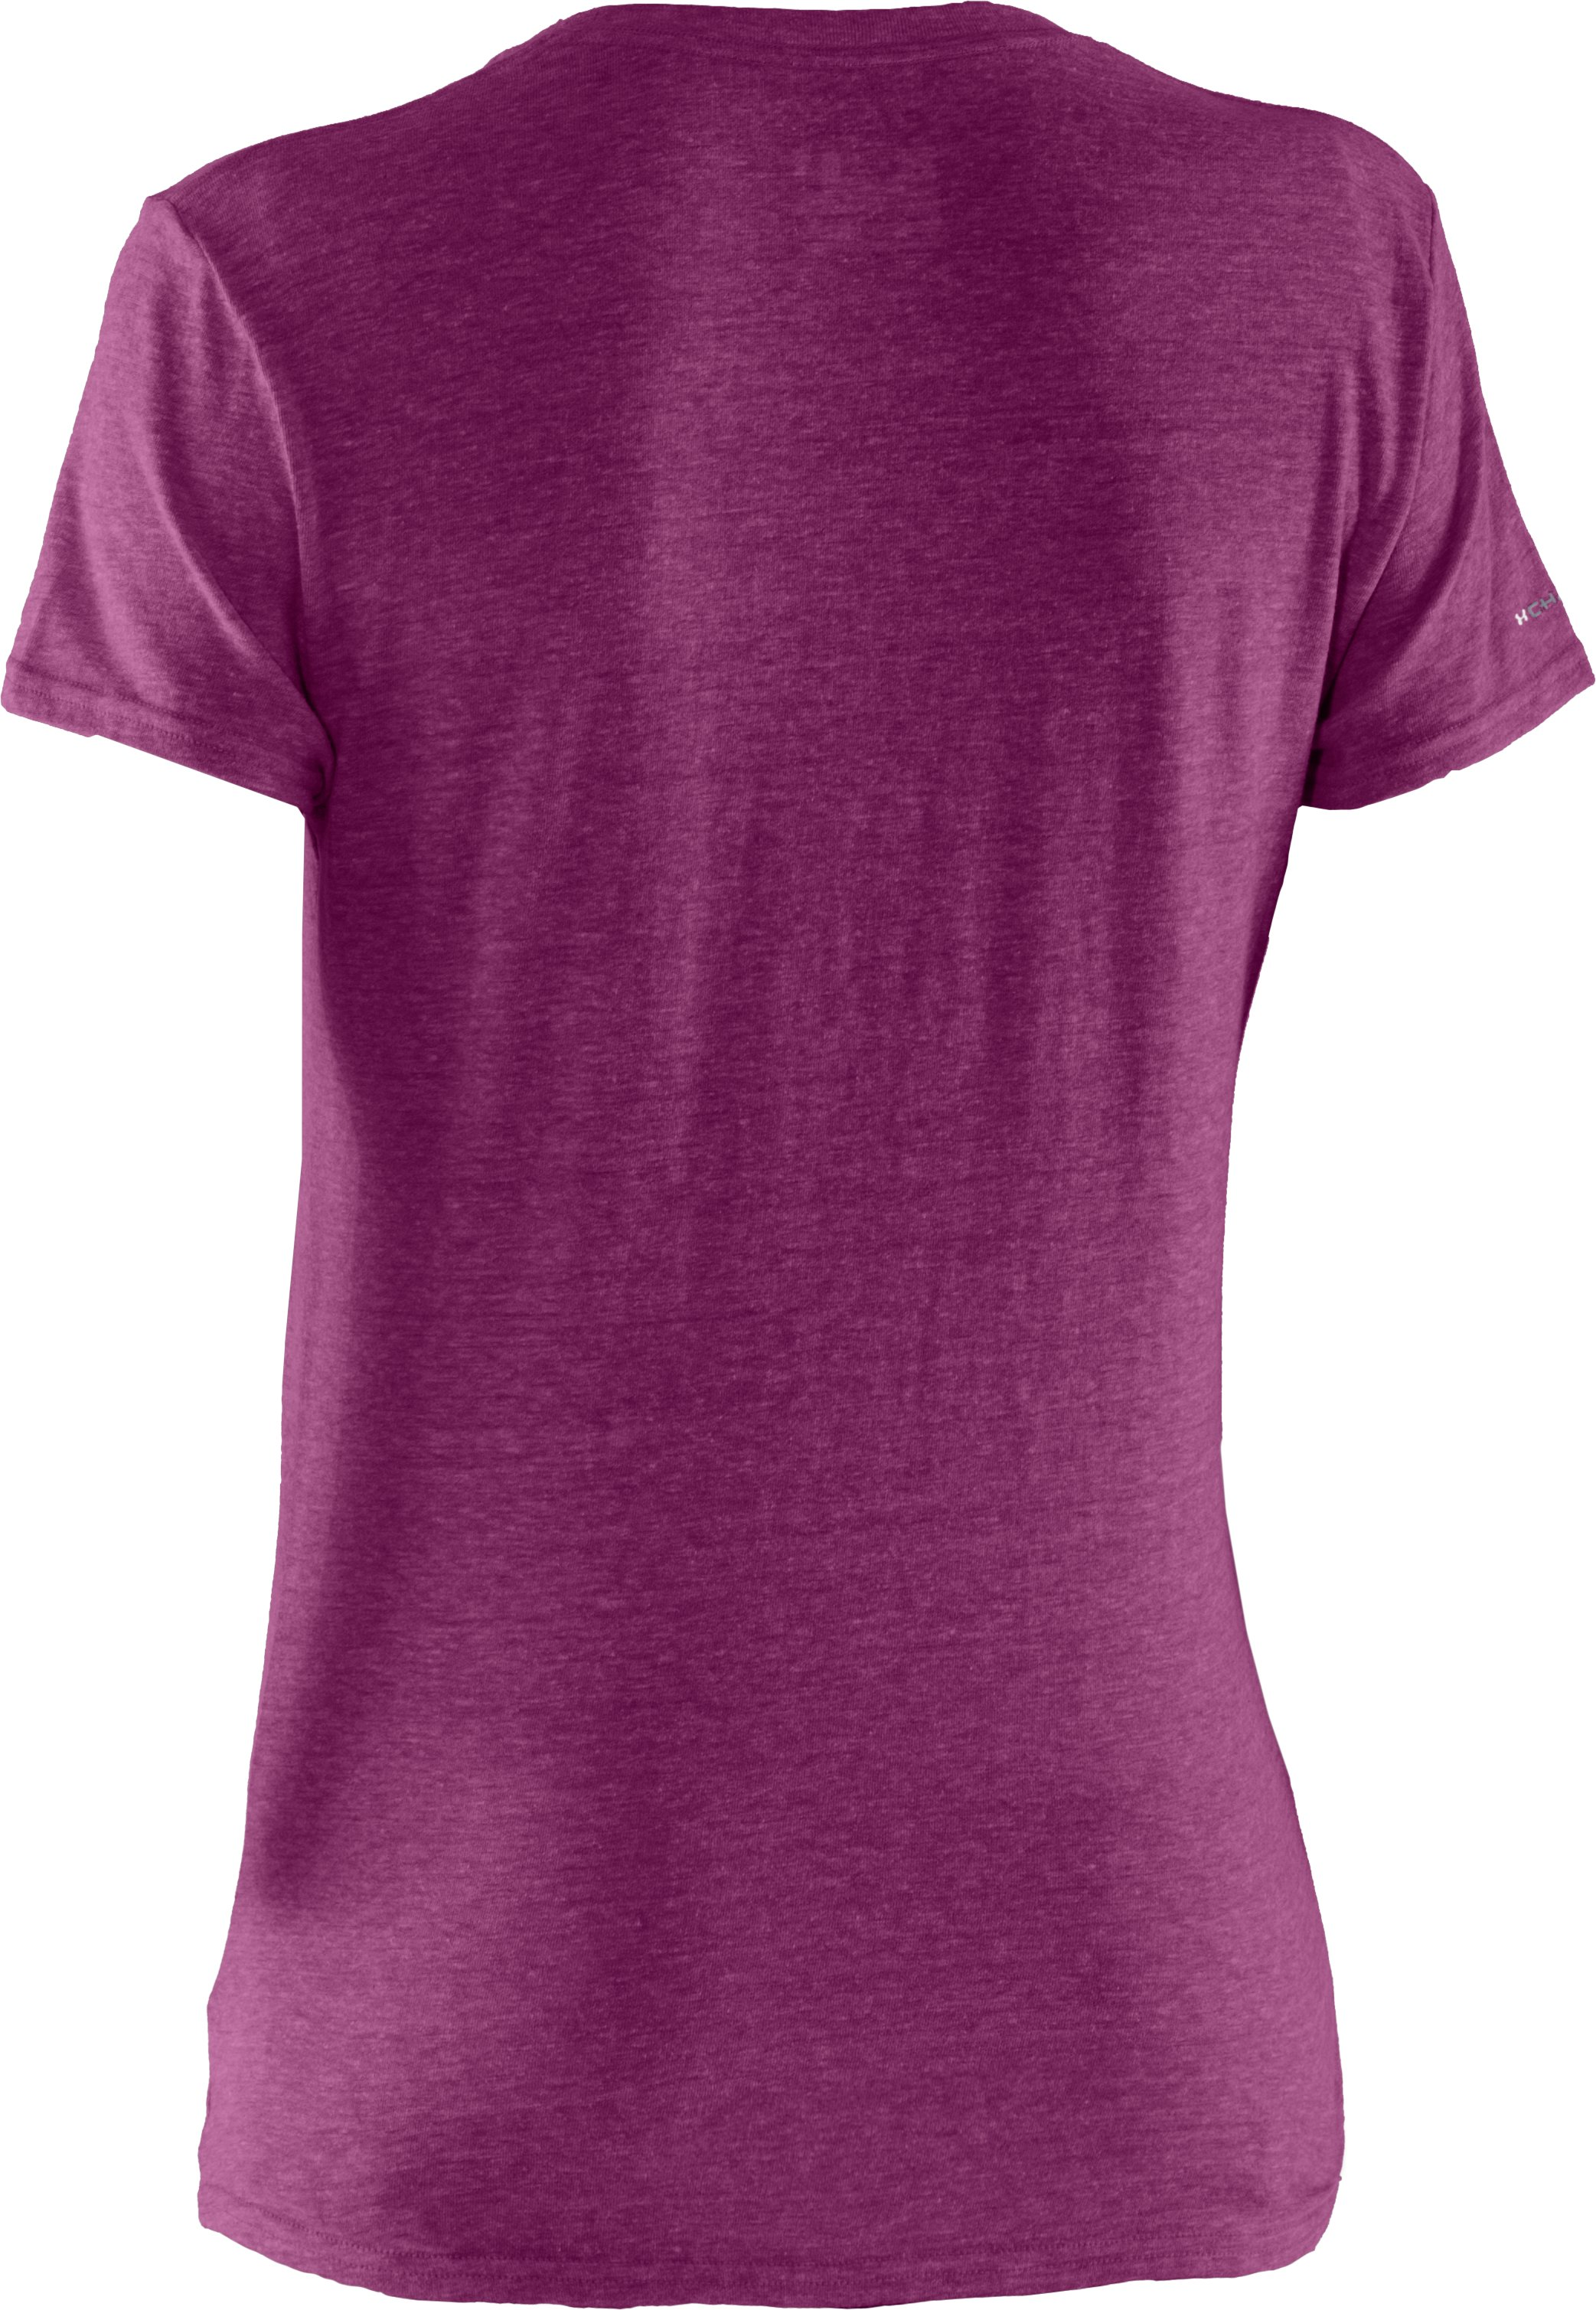 Women's Charged Cotton® Undeniable T-Shirt, Aubergine